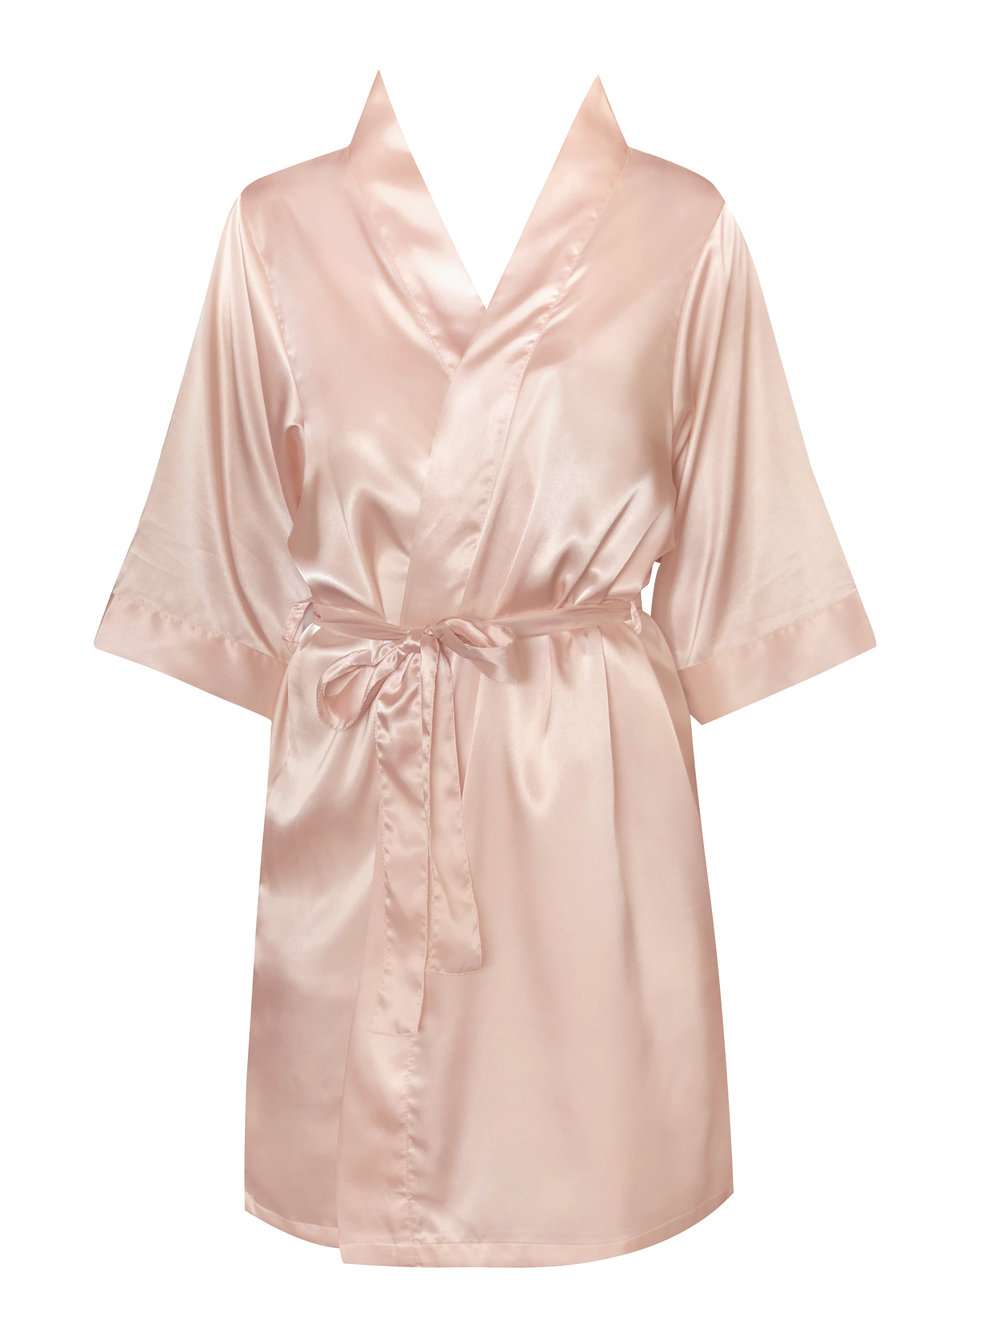 Personalised Bride and Bridal Party Satin Robe Dressing Gown ... 408200c2c